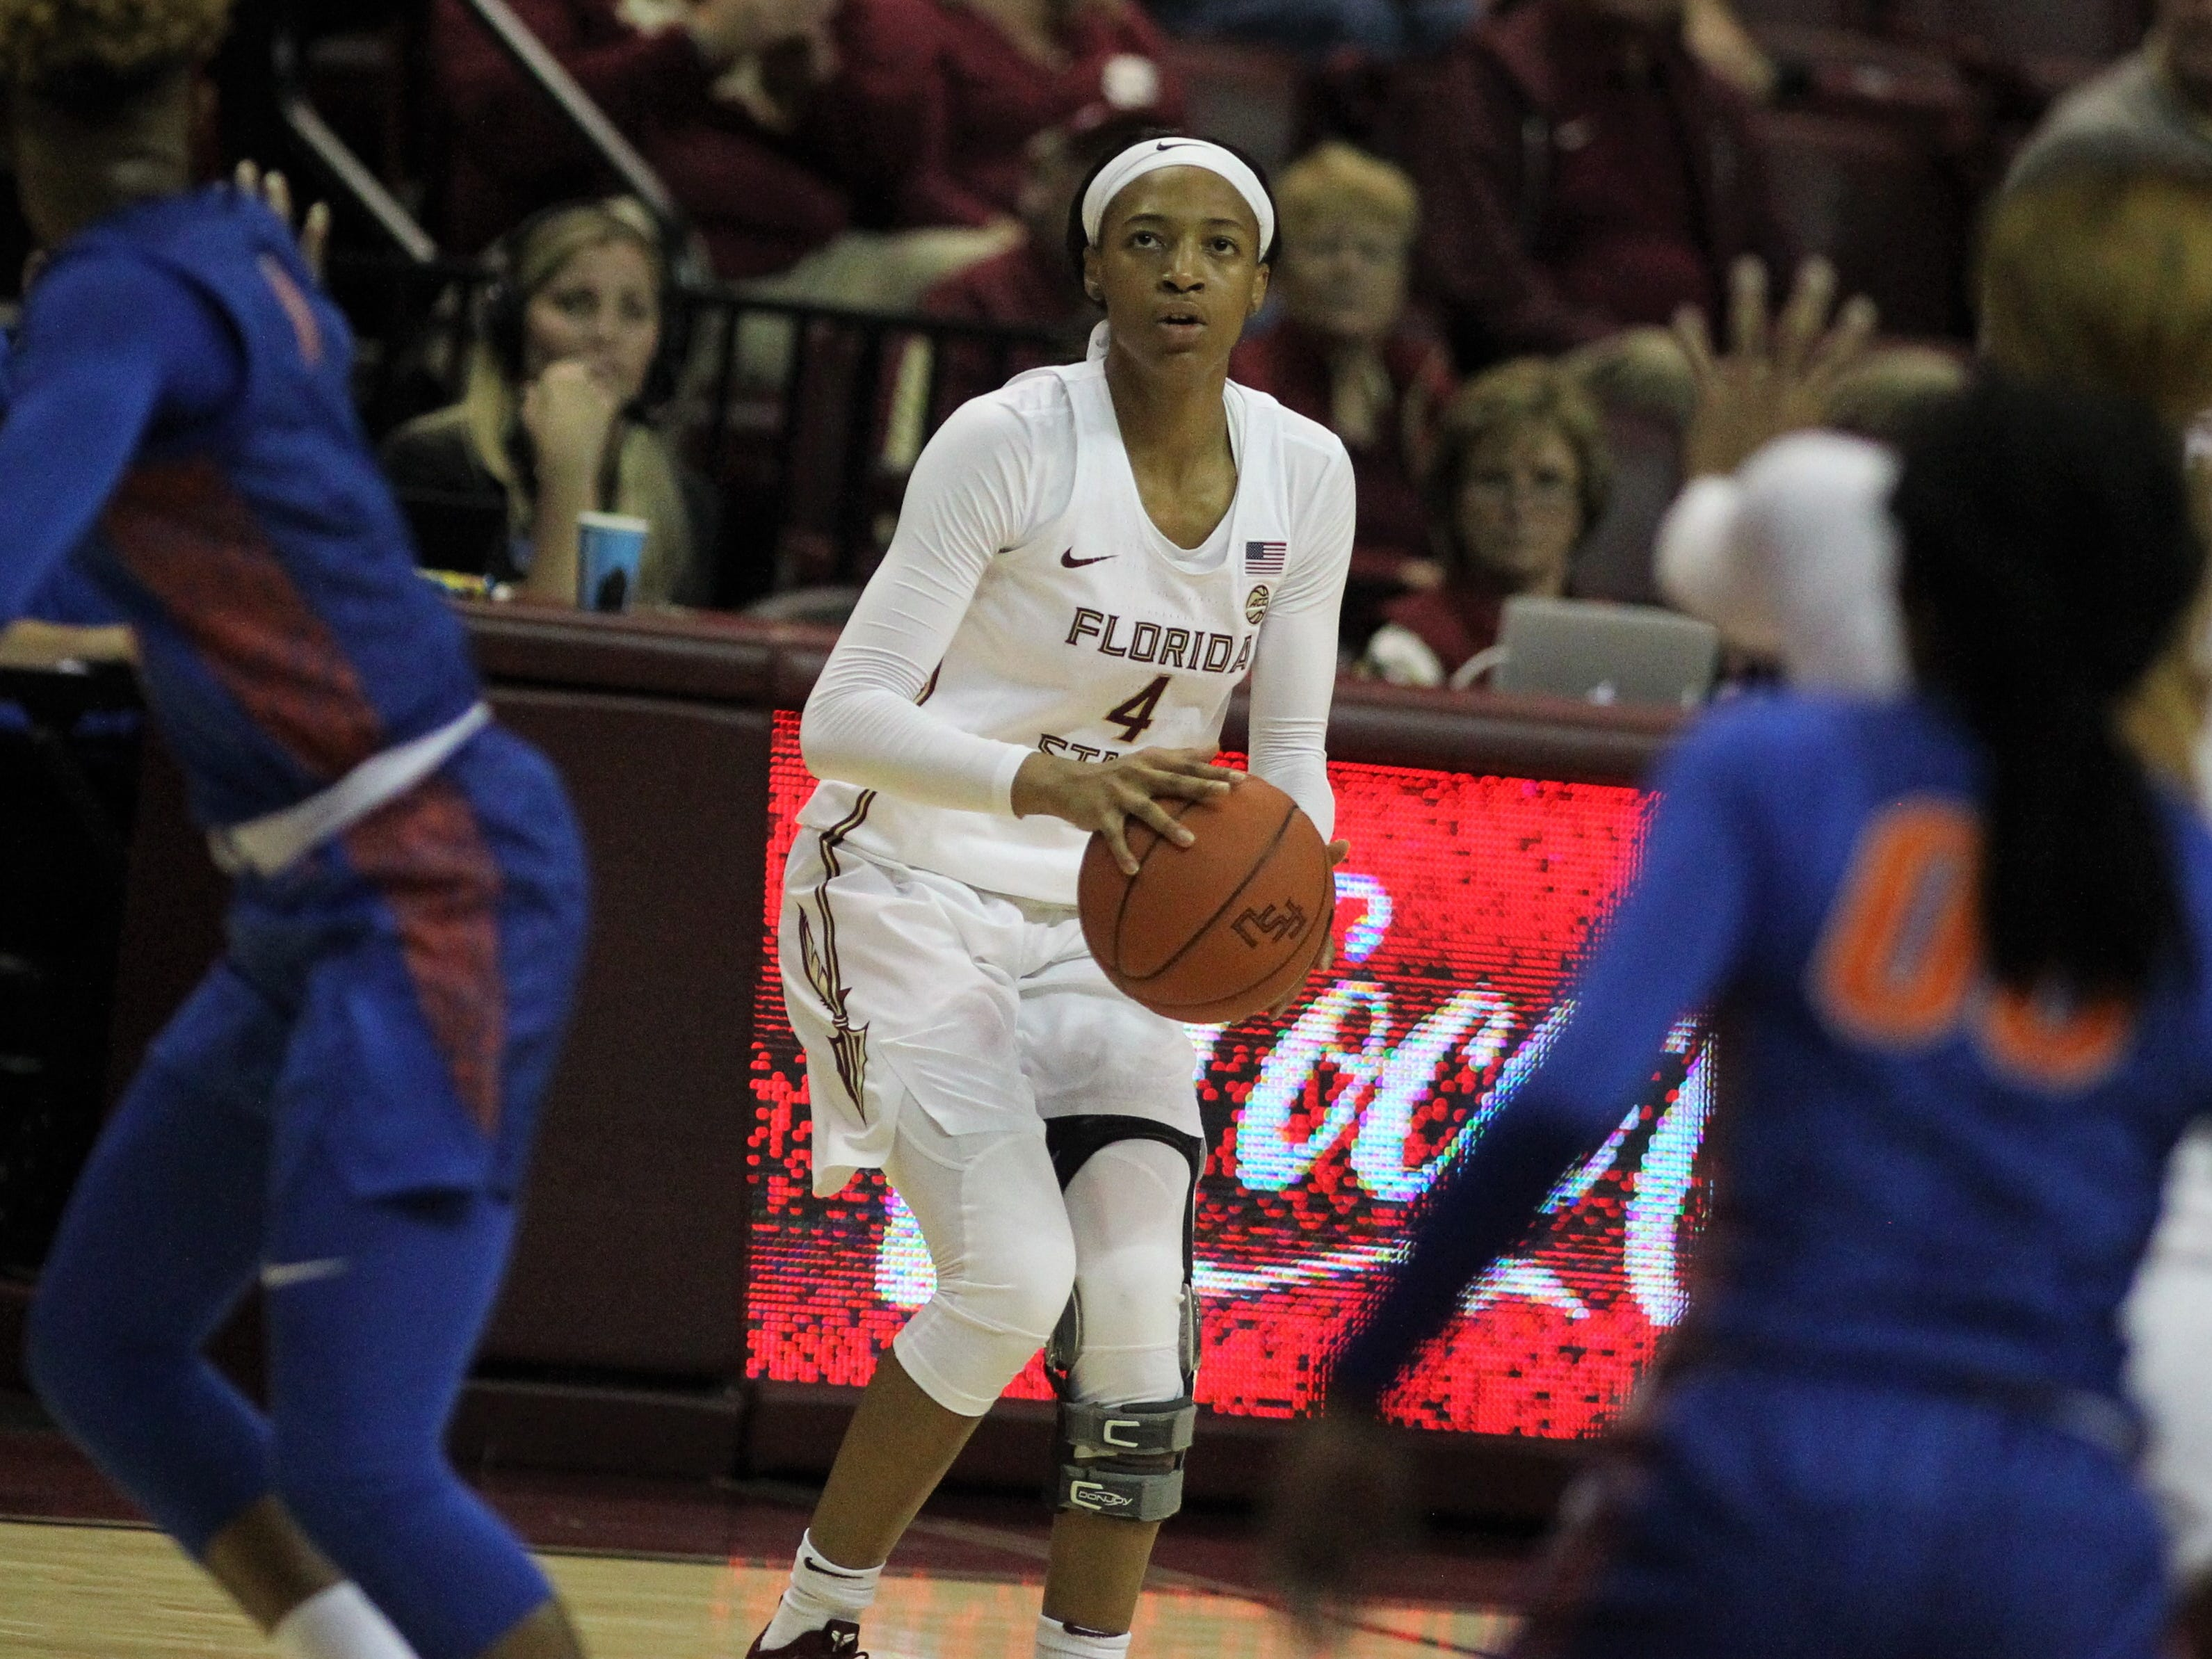 Florida State freshman Amaya Brown sizes up a 3-pointer during the first half of the Seminoles' game against Florida at the Tucker Civic Center on Nov. 11, 2018.